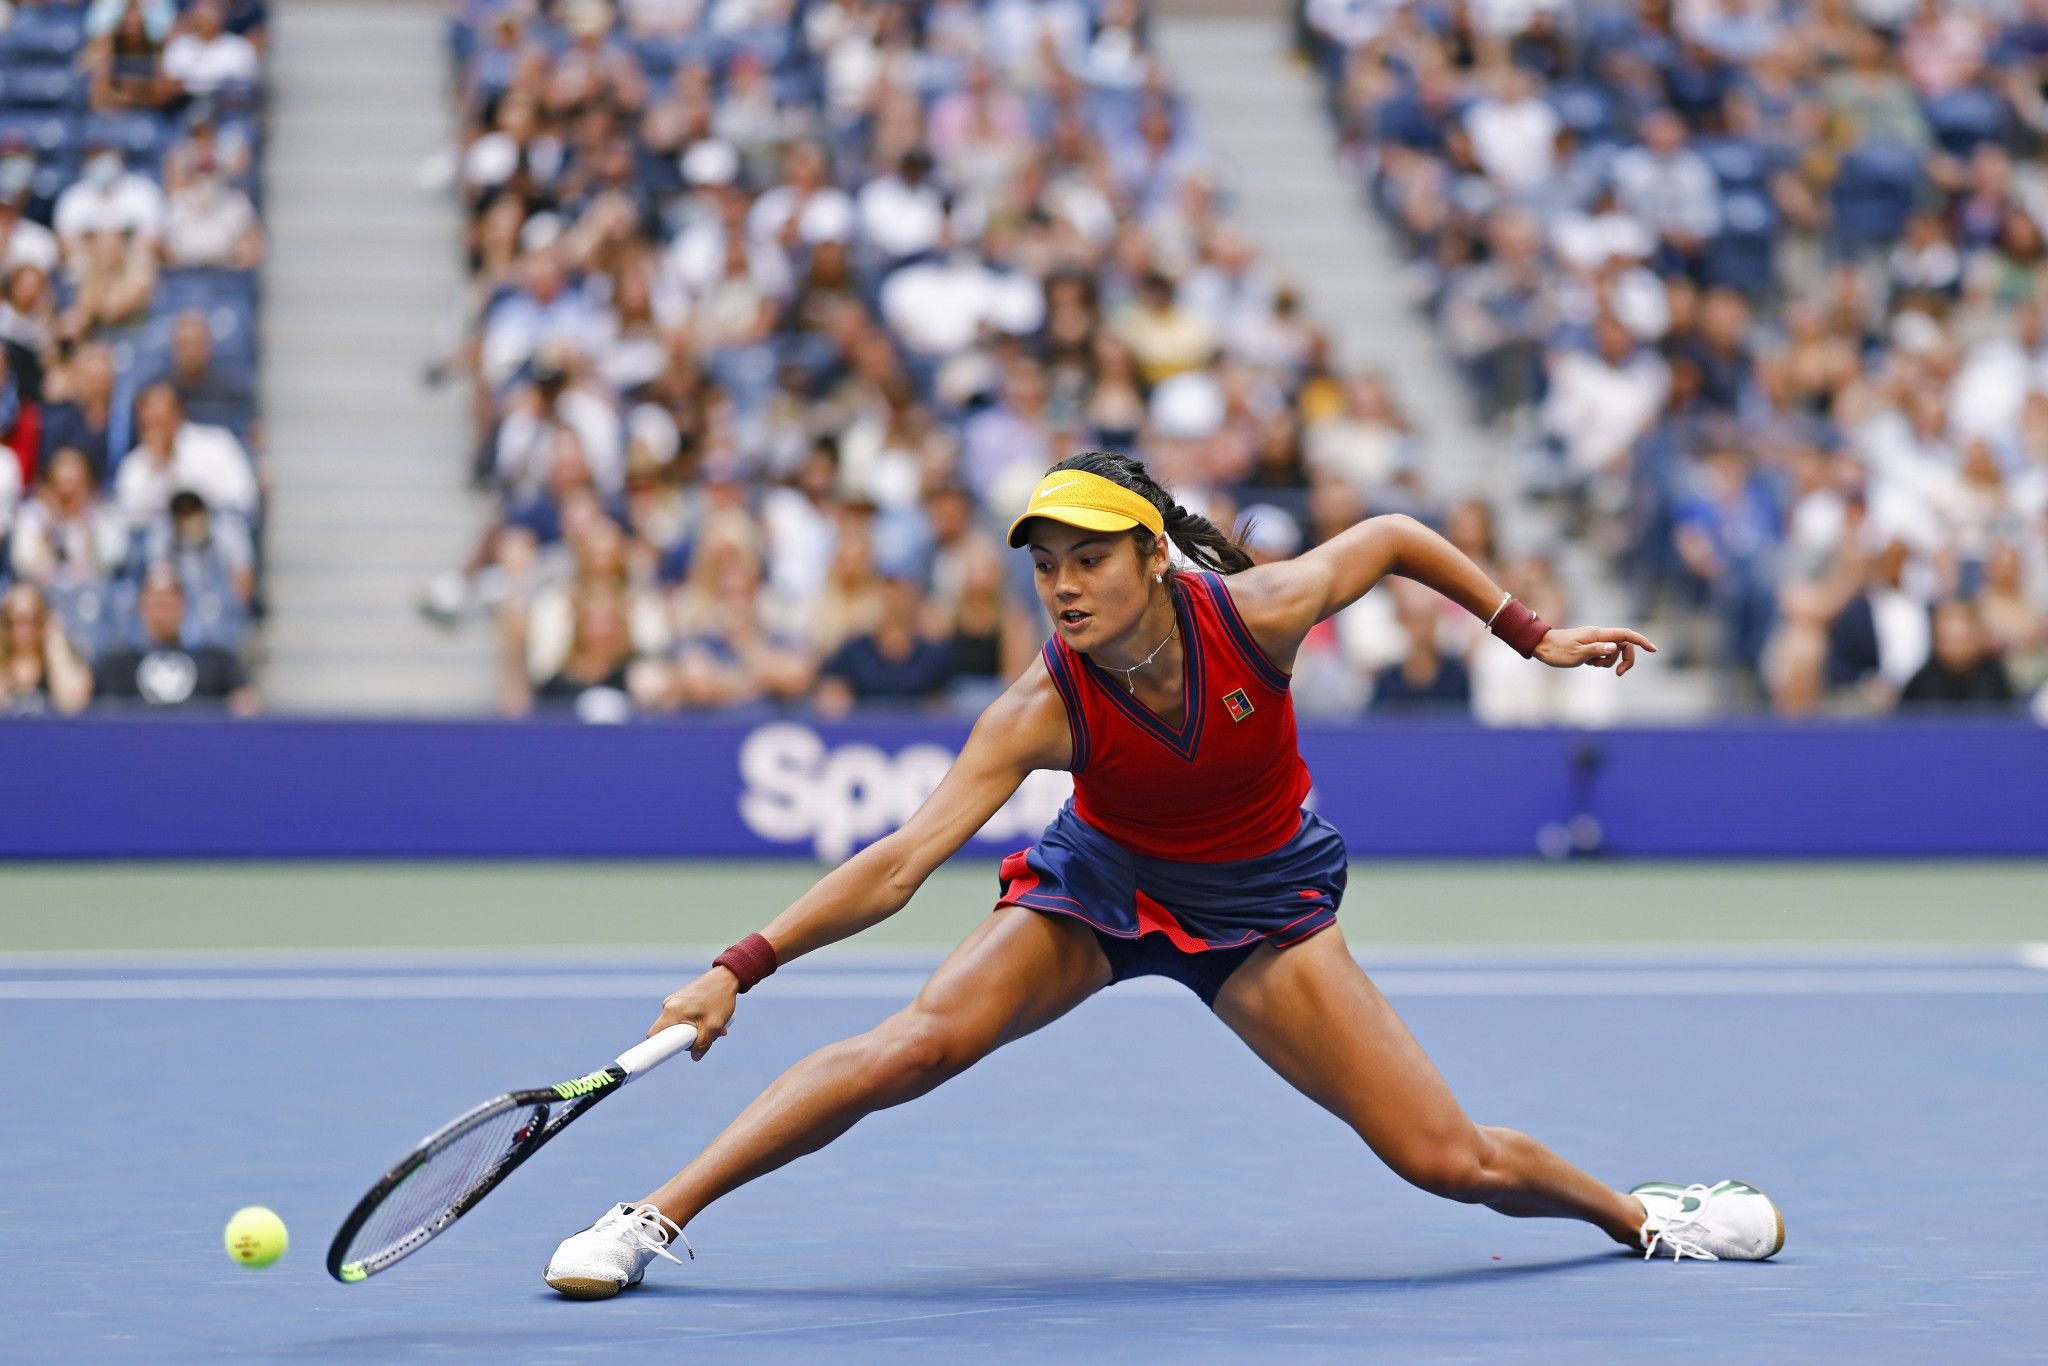 Relentless Raducanu becomes first-ever qualifier to win a Grand Slam at US Open